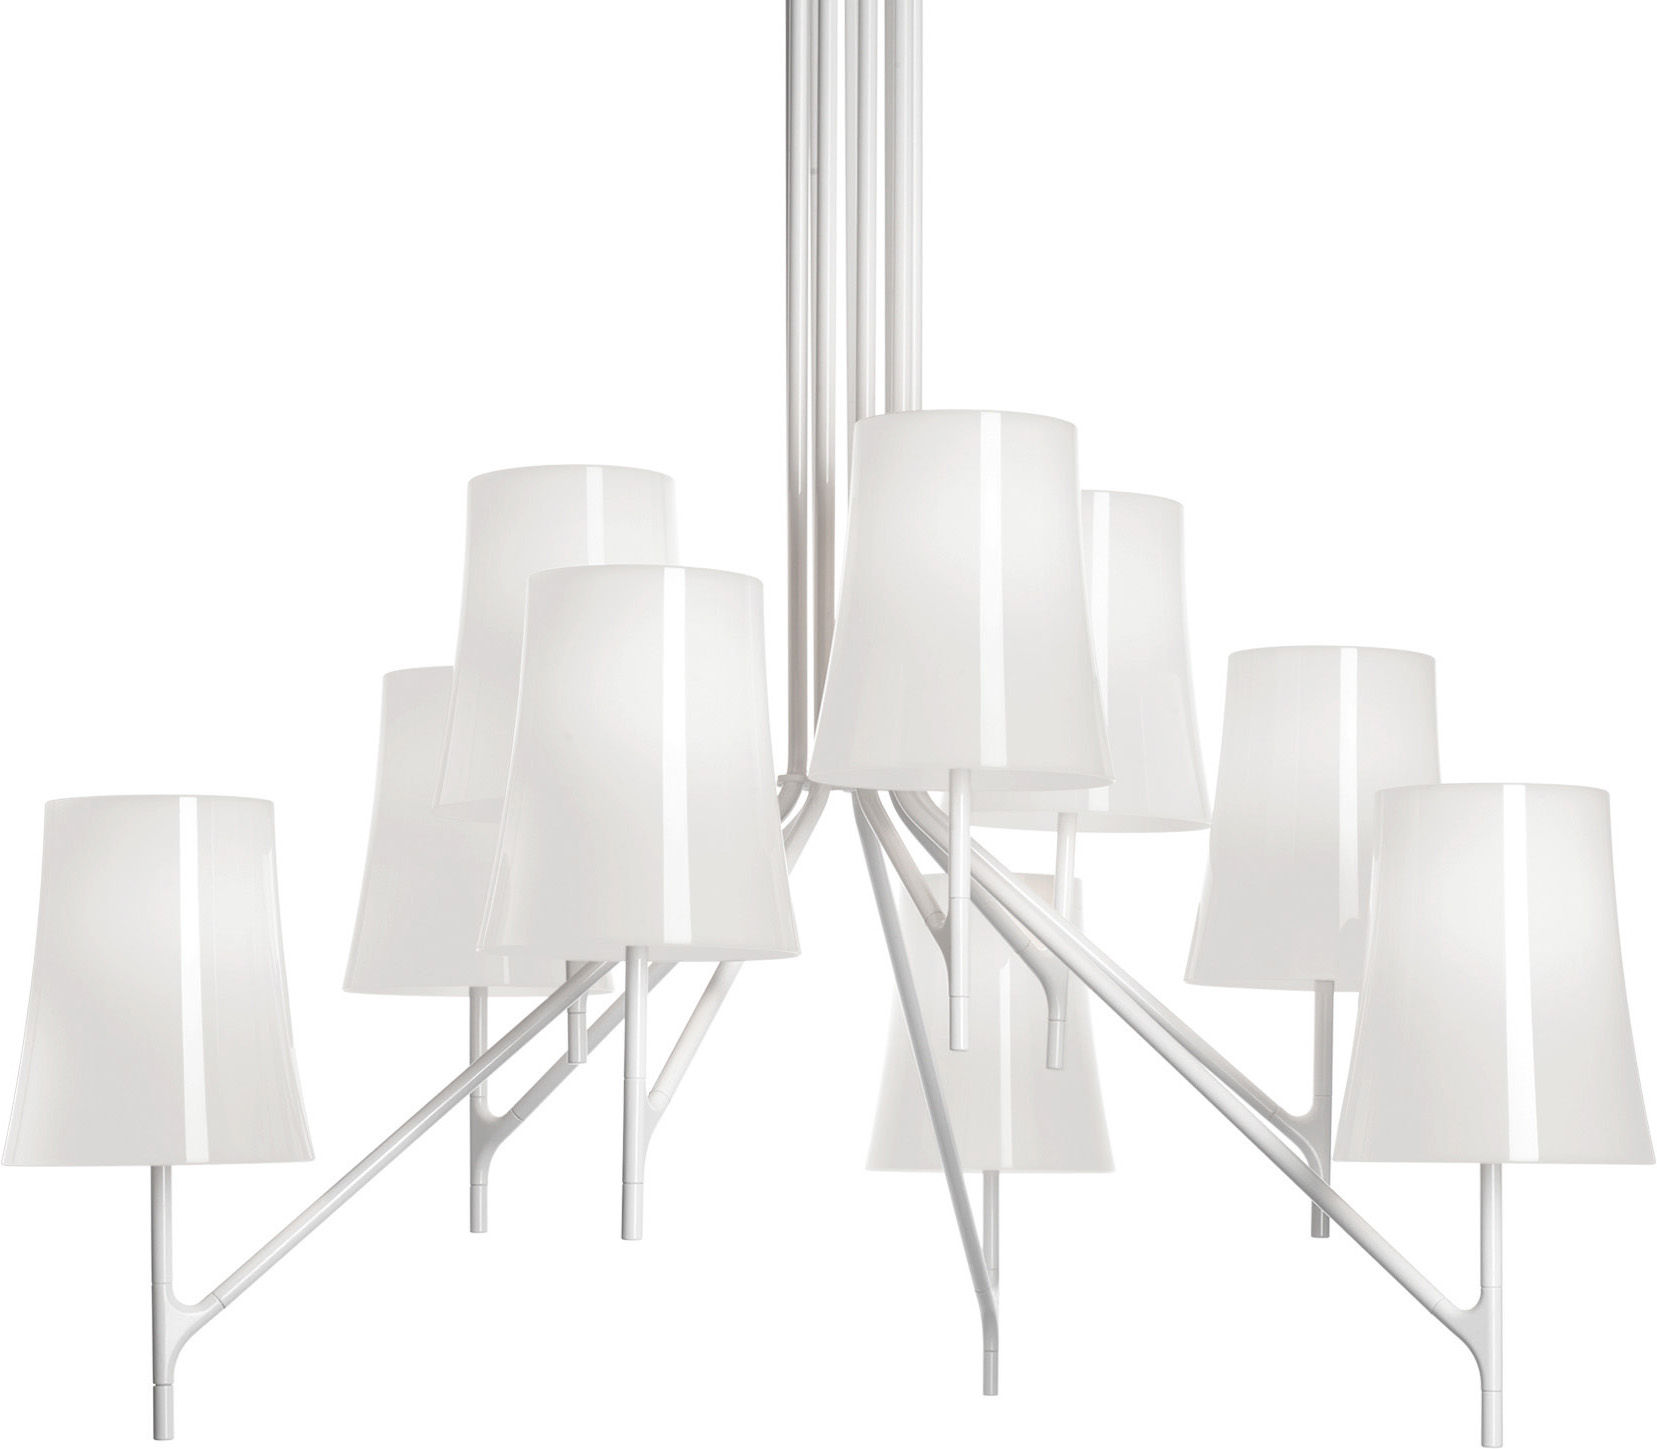 Lighting - Pendant Lighting - Birdie Pendant - Six arms - Fix height by Foscarini - 6 arms - White - Polycarbonate, Varnished stainless steel